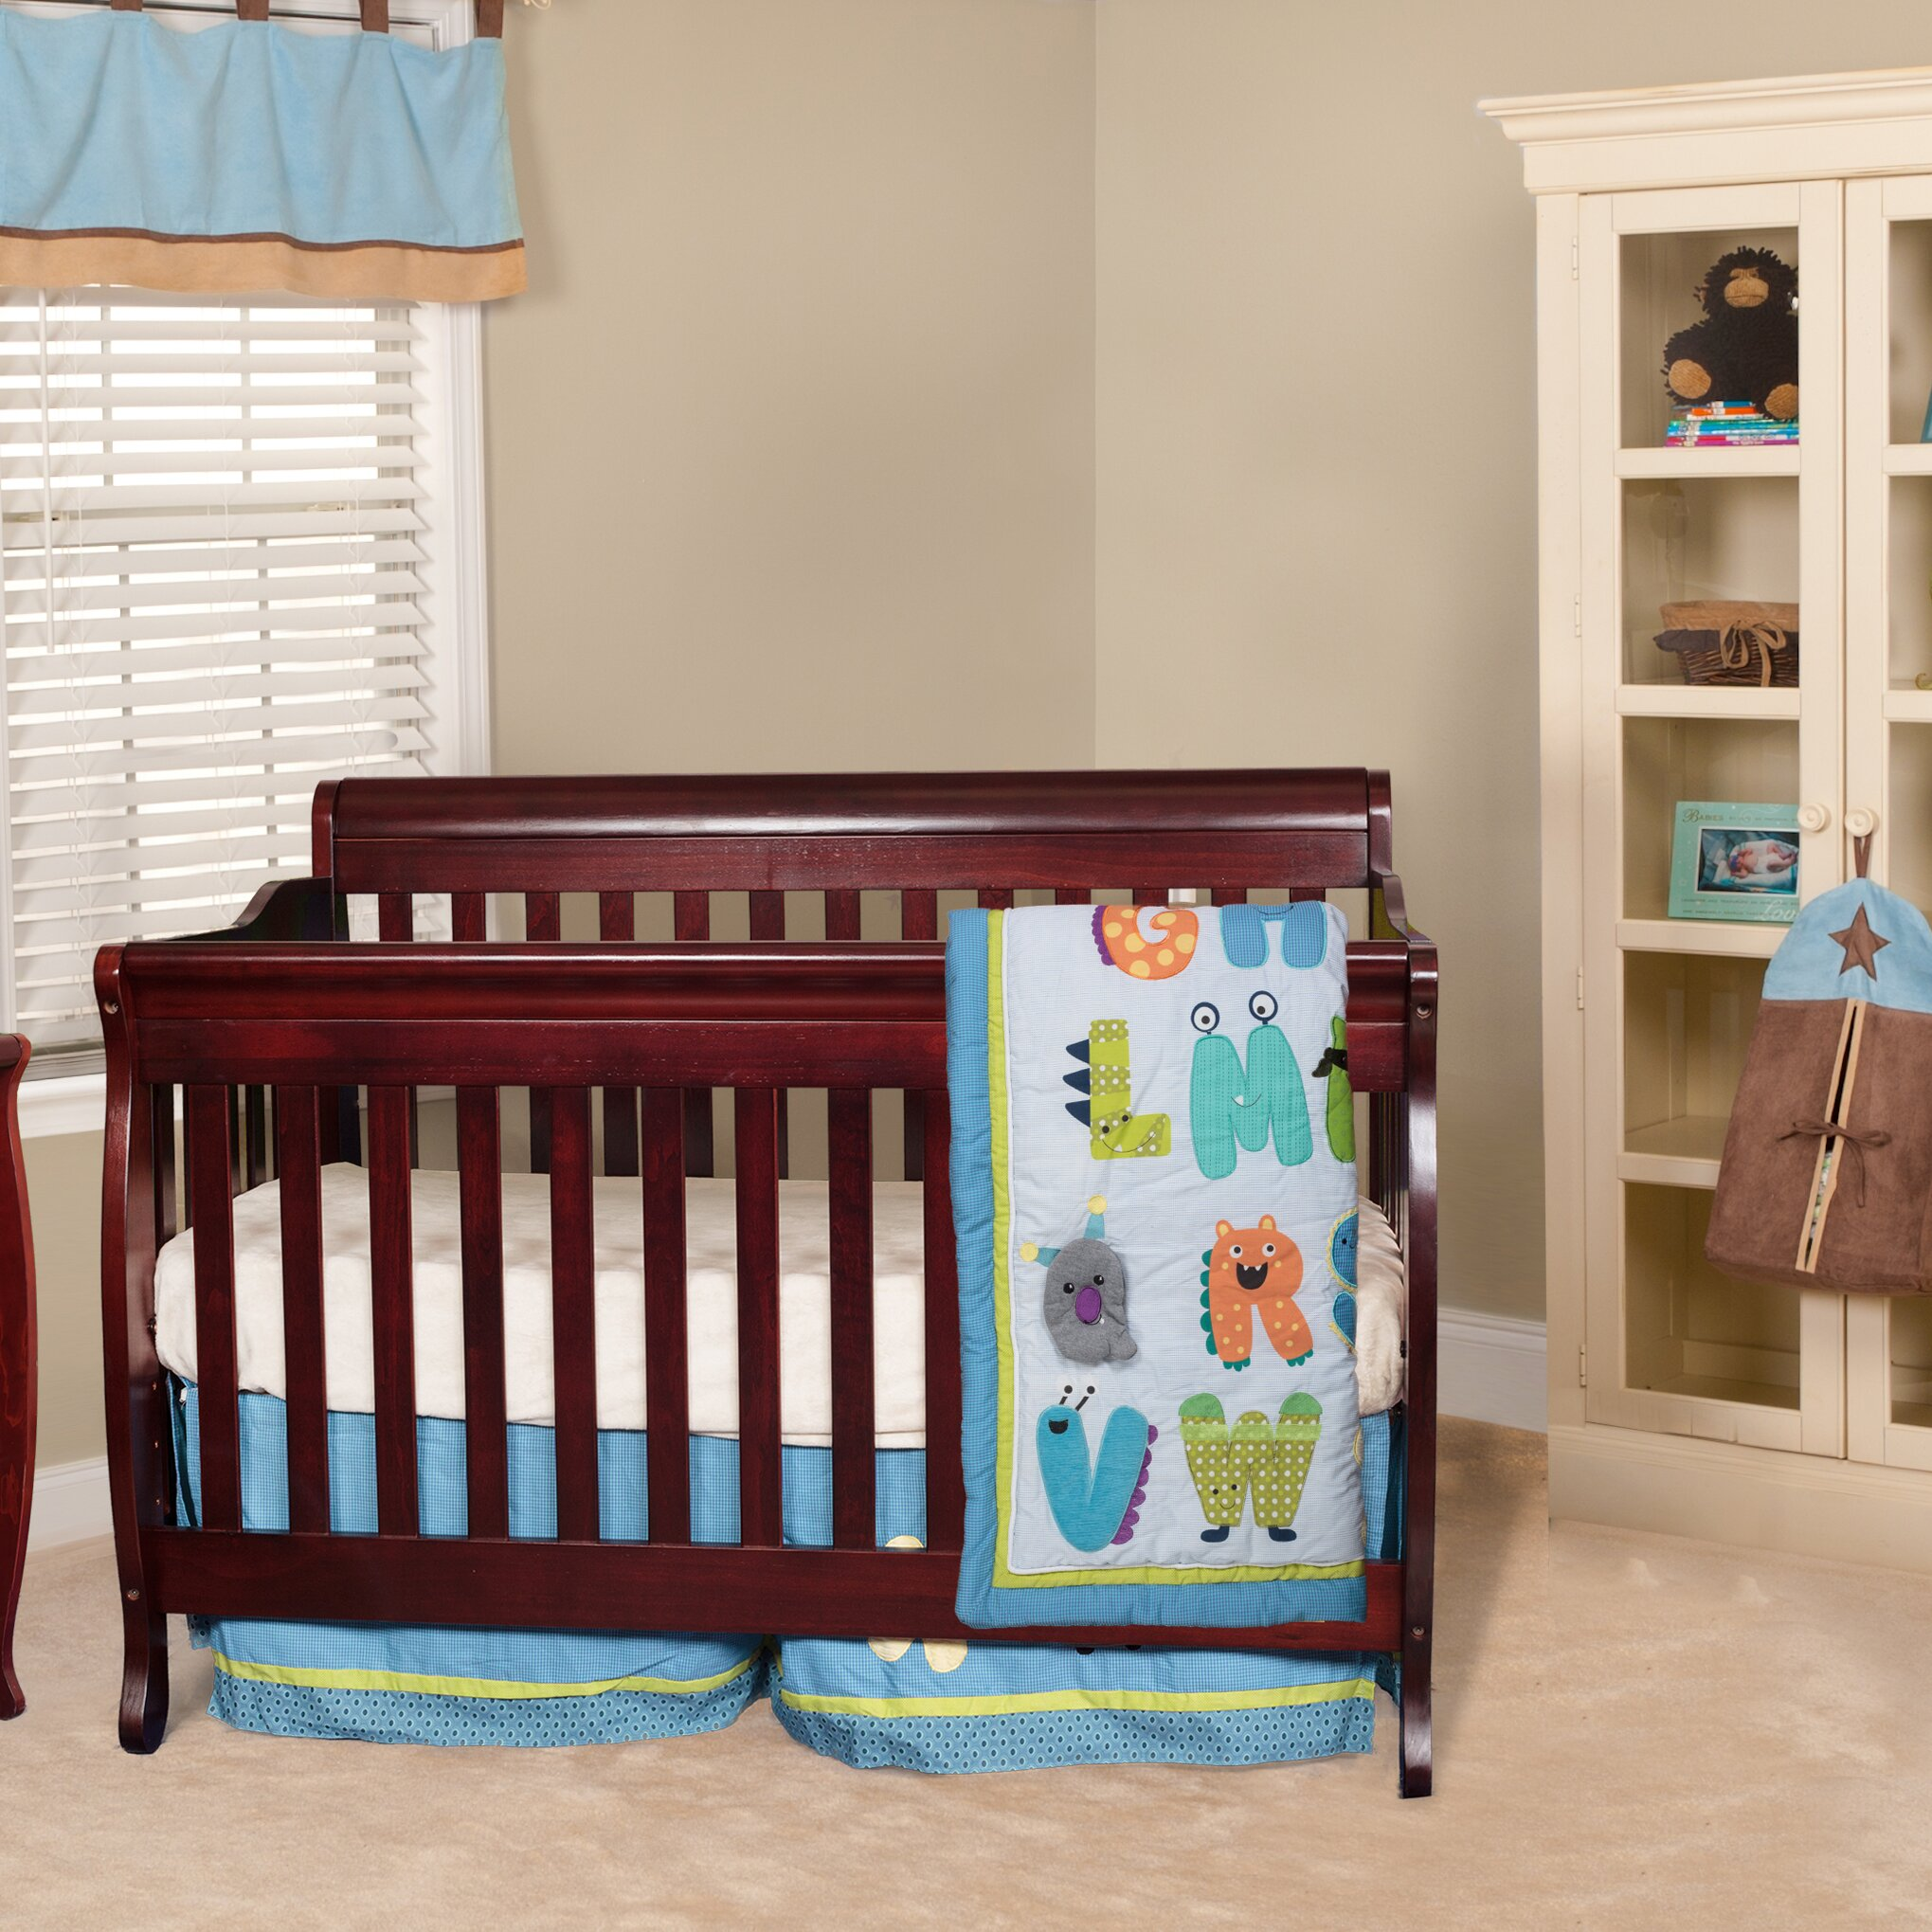 Crib for sale in palm bay - Afg Baby Furniture Alice Grace 2 Piece Convertible Crib Set